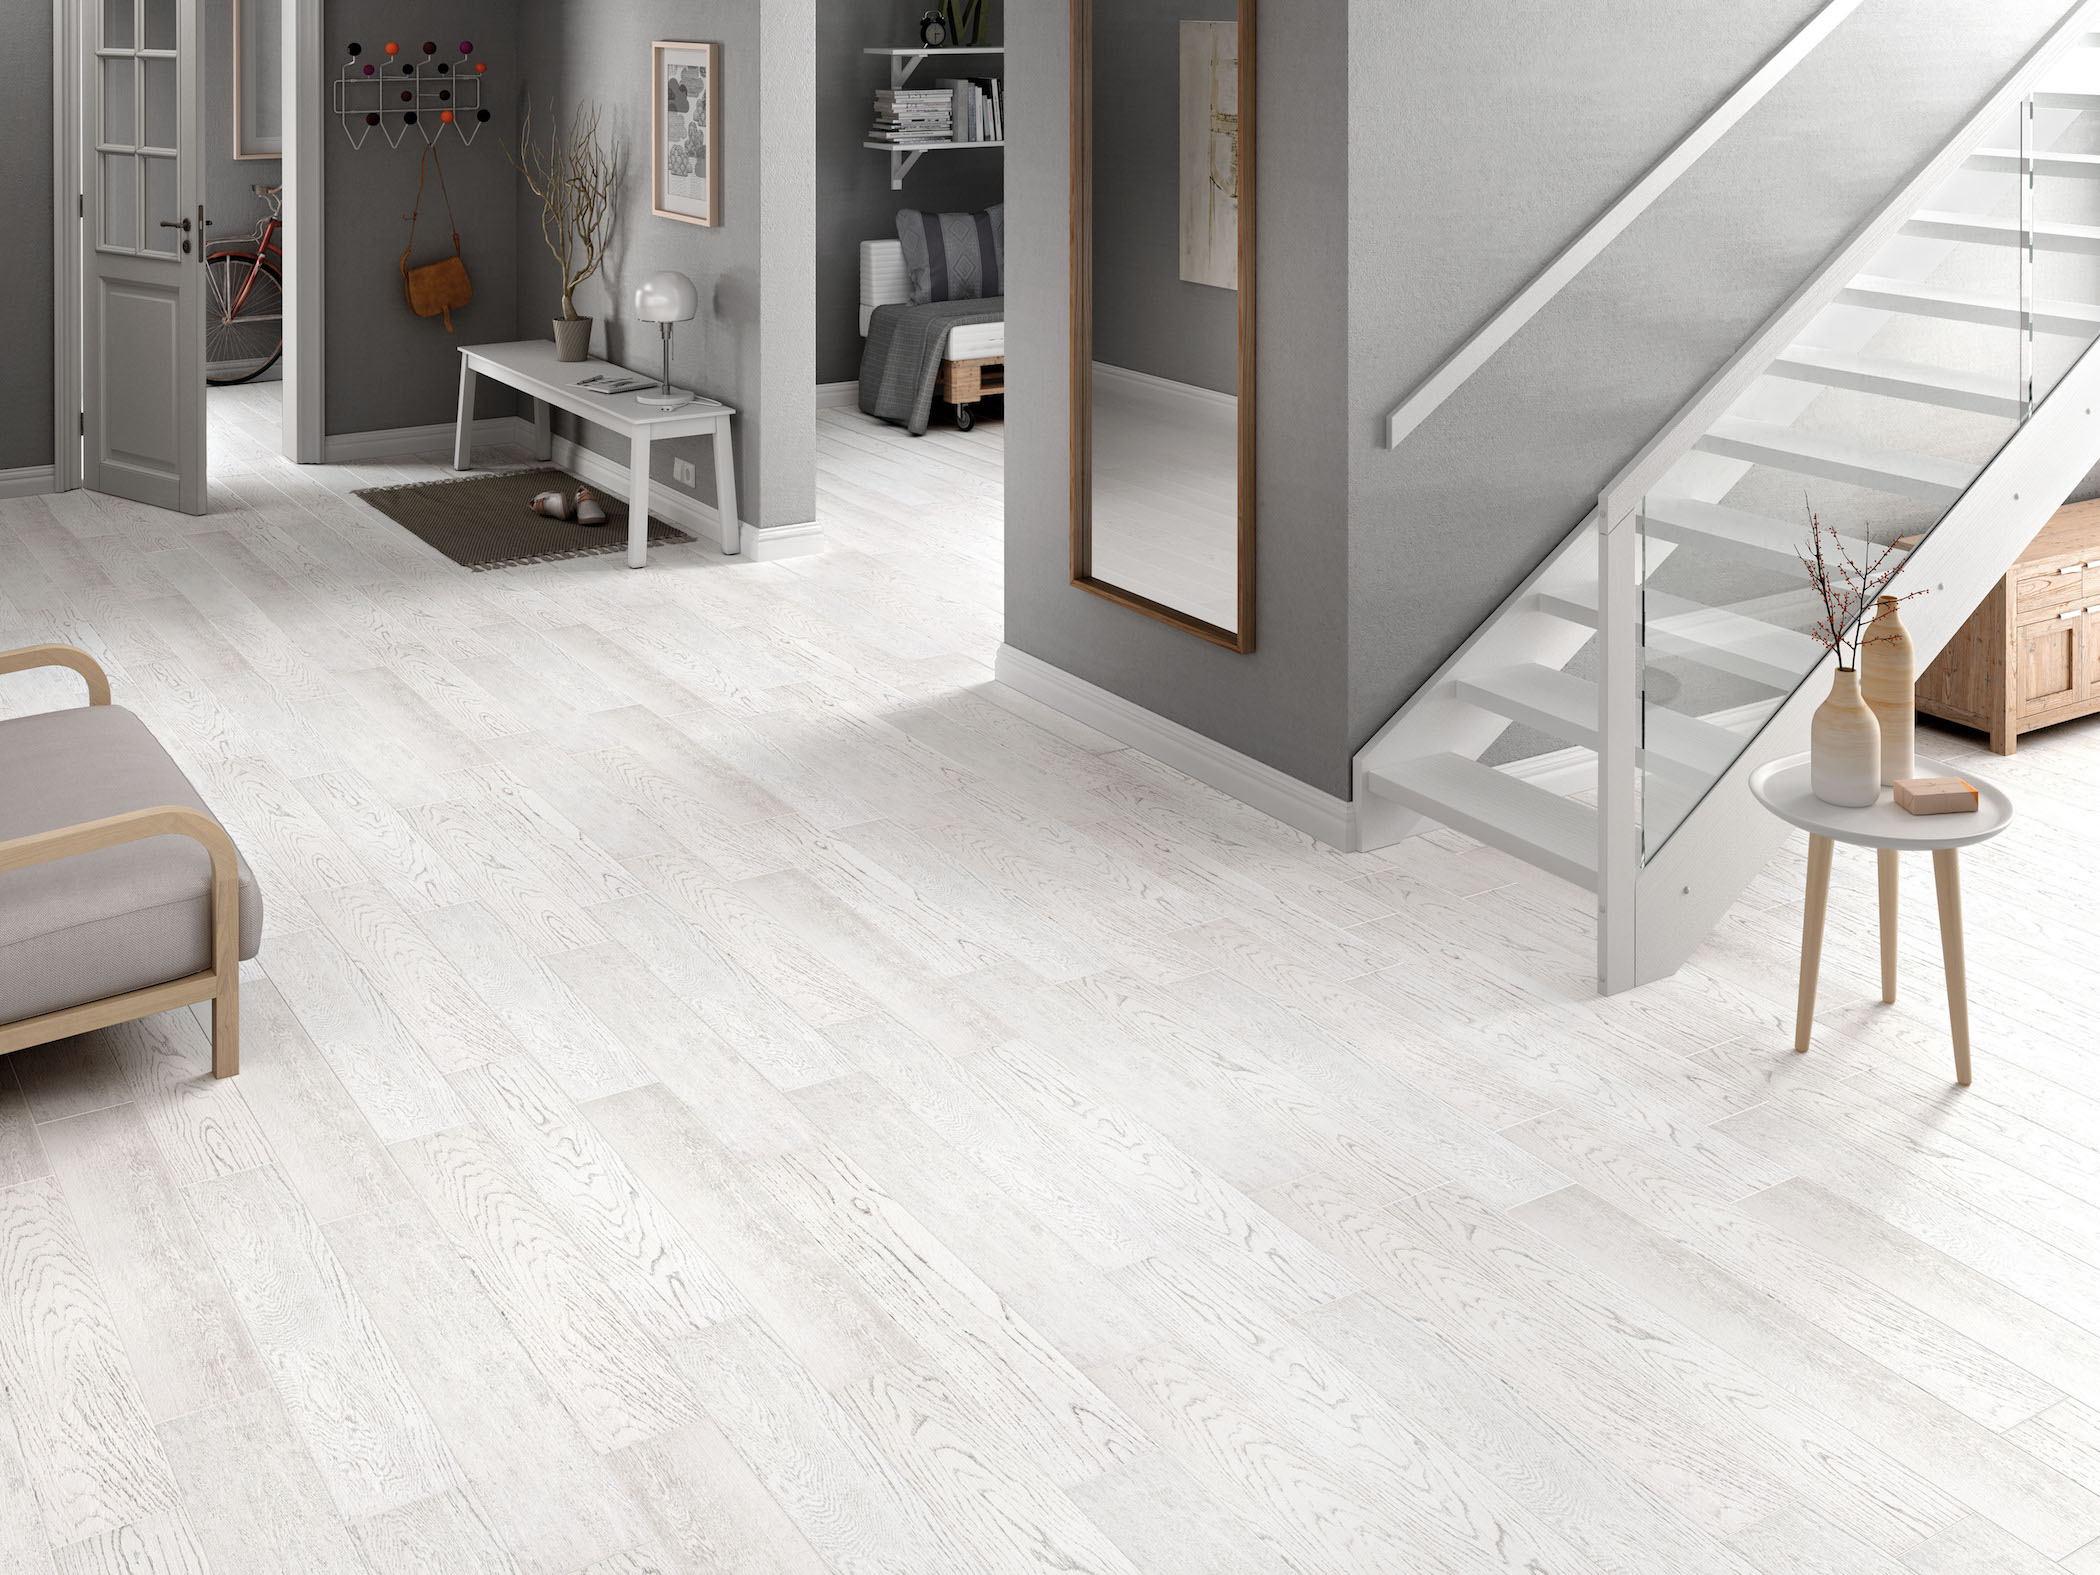 Tile Of Spain Exhibits New Product Innovations And Trends